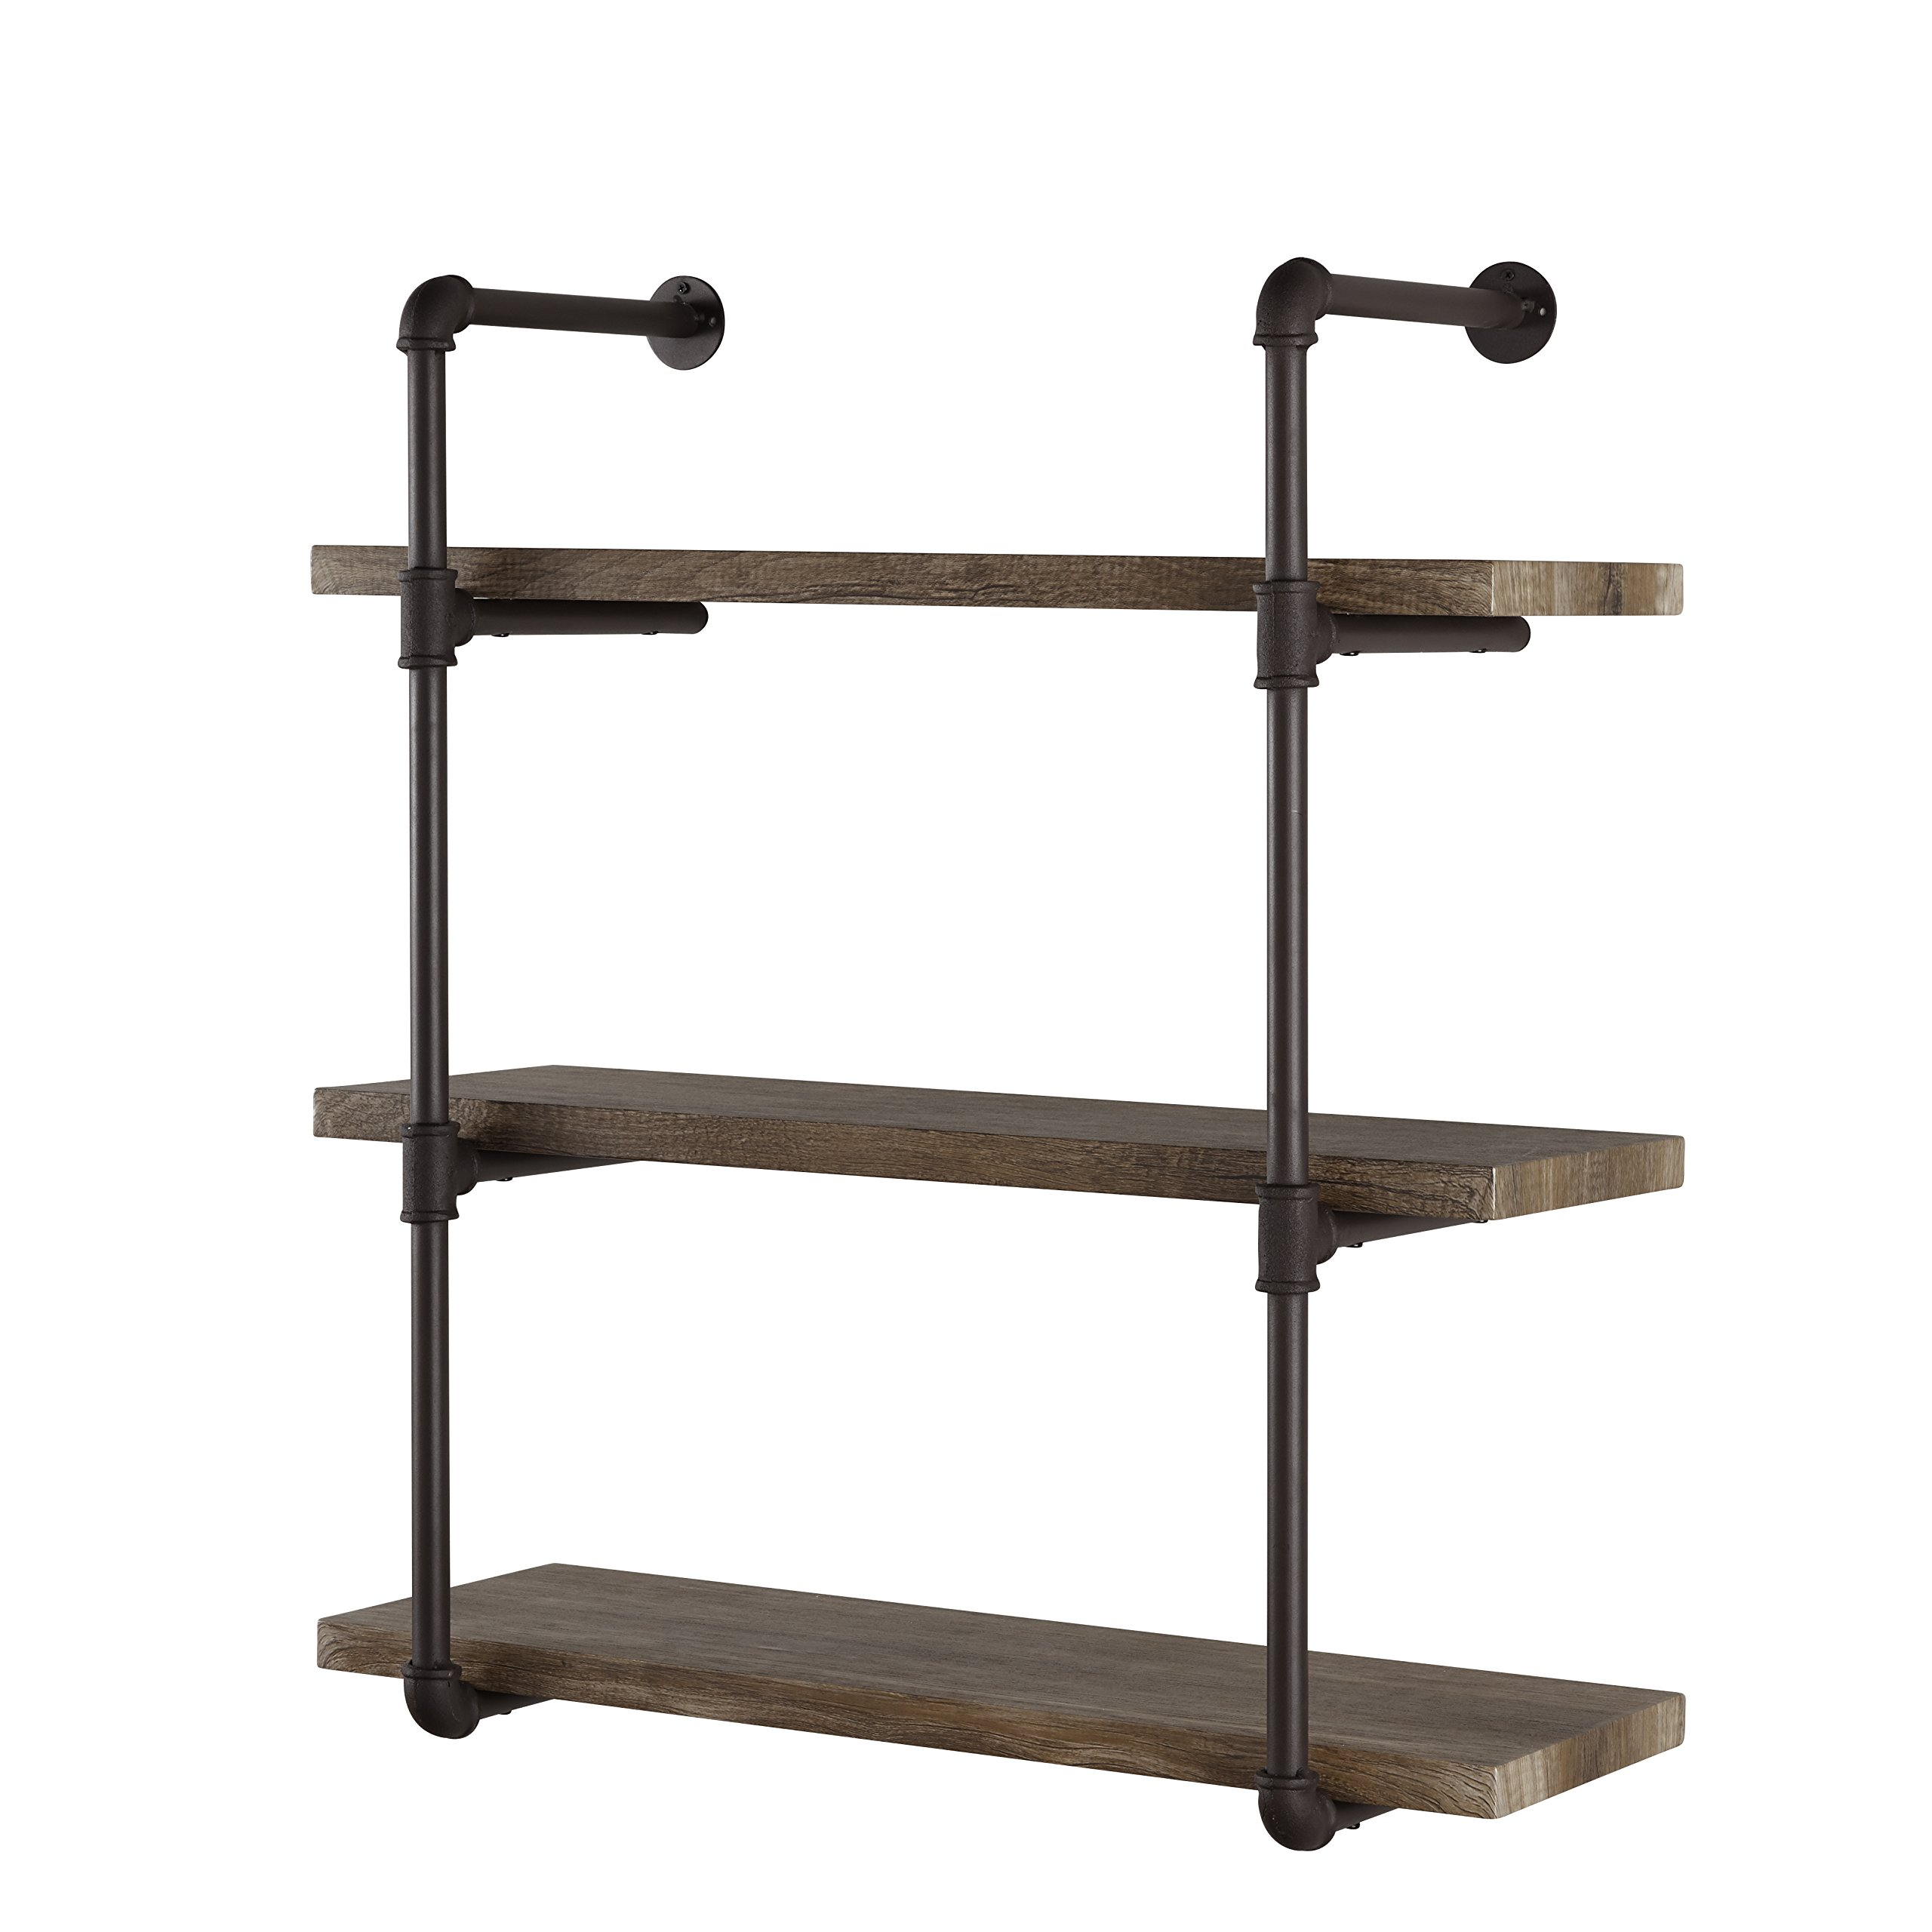 Decorative Floating 3-Tier Wall Mounted Hanging Pipe Shelves - Rustic , Urban and Industrial Décor - Perfect for the Living Room, Dining Room, Kitchen, Bedroom, Bathroom, Nursery or Office. Brown